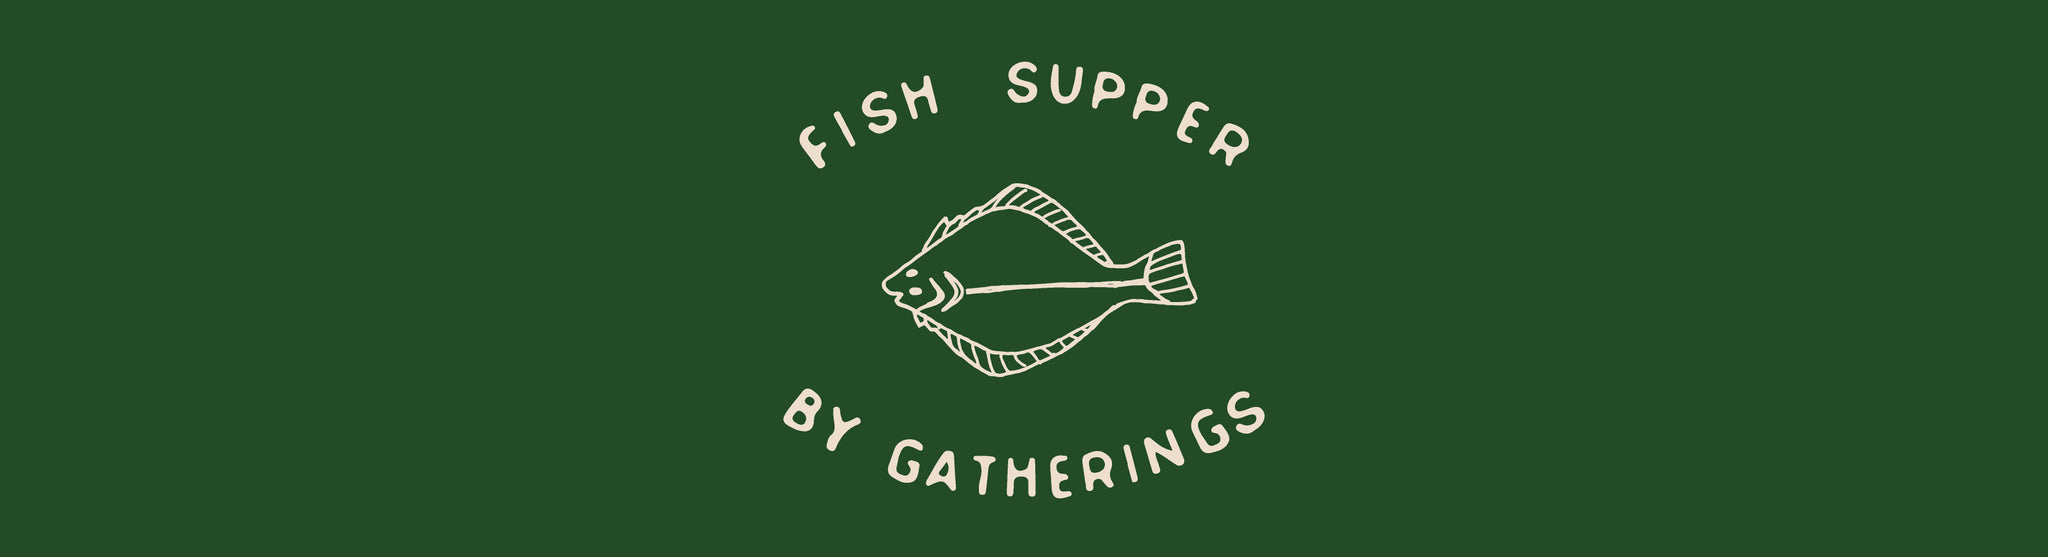 Fish Supper by Gatherings